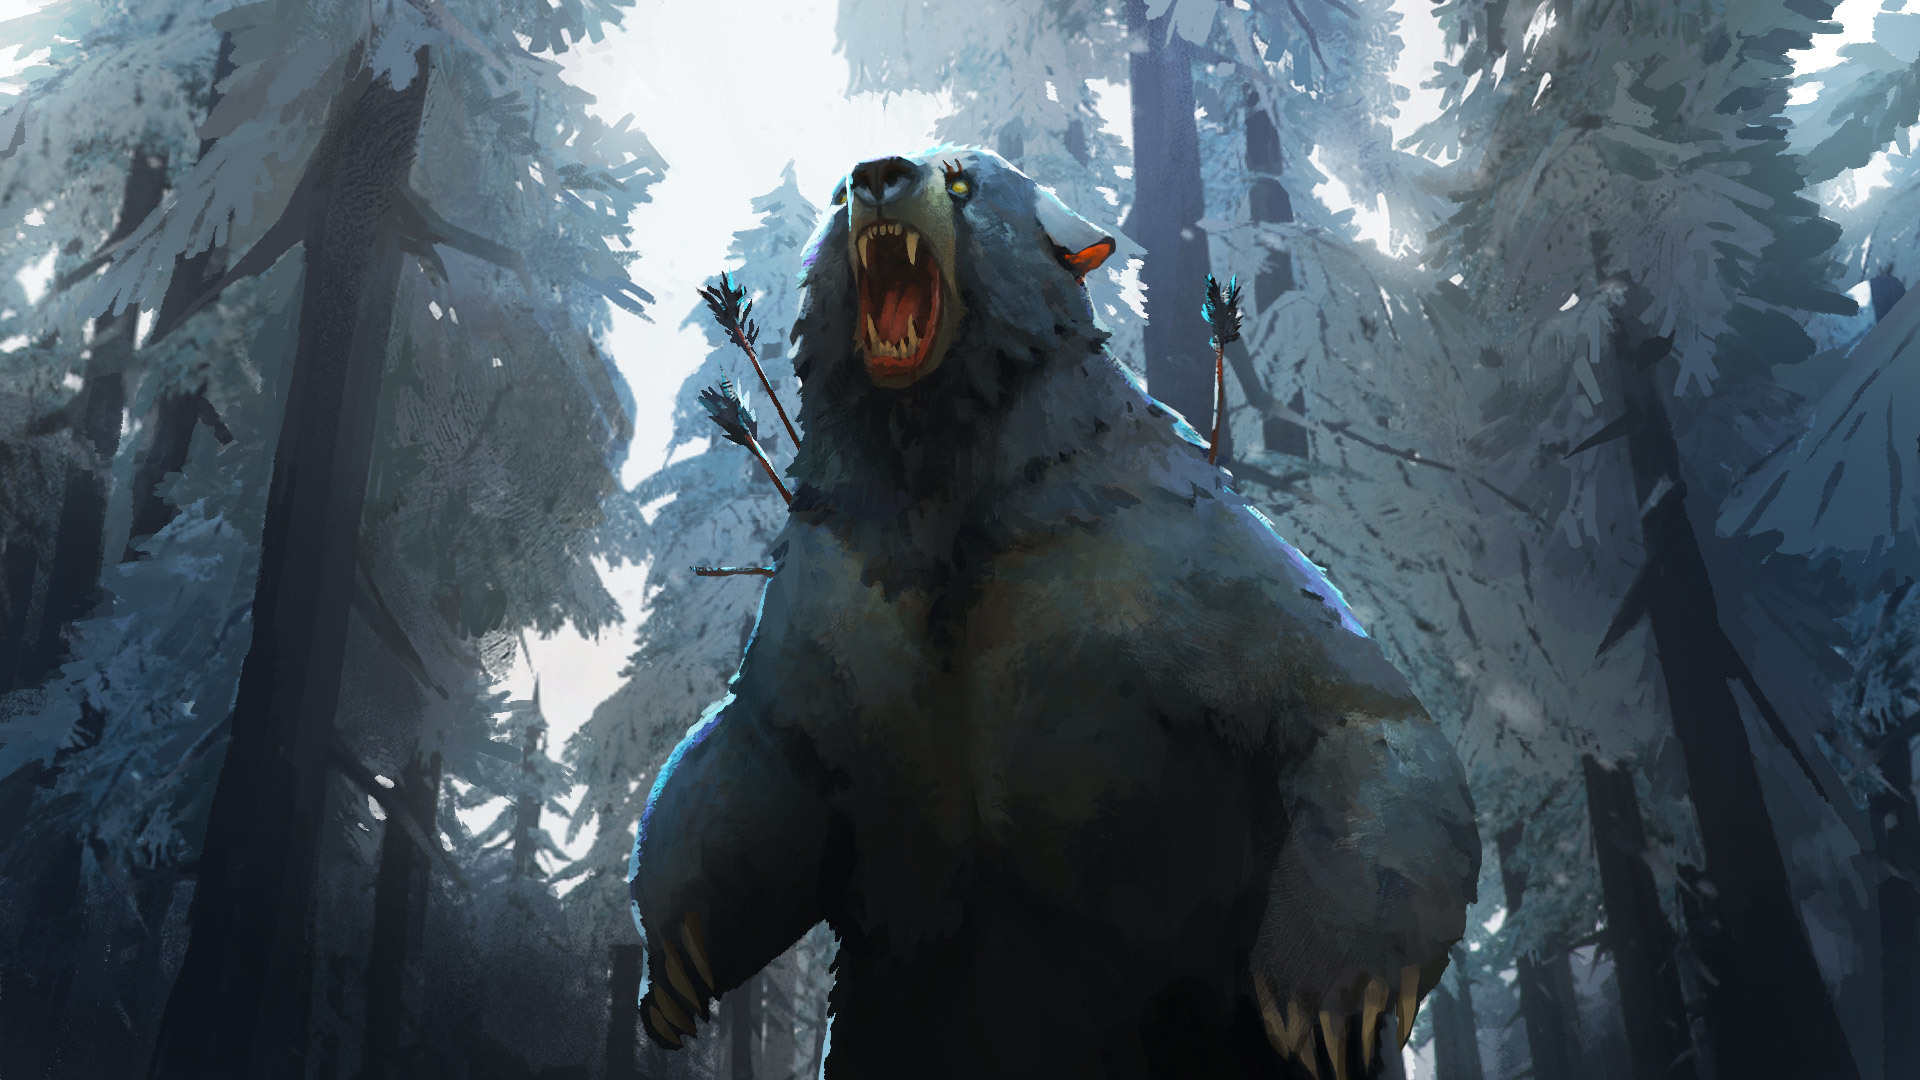 Wounded bear. Wallpapers from The Long Dark